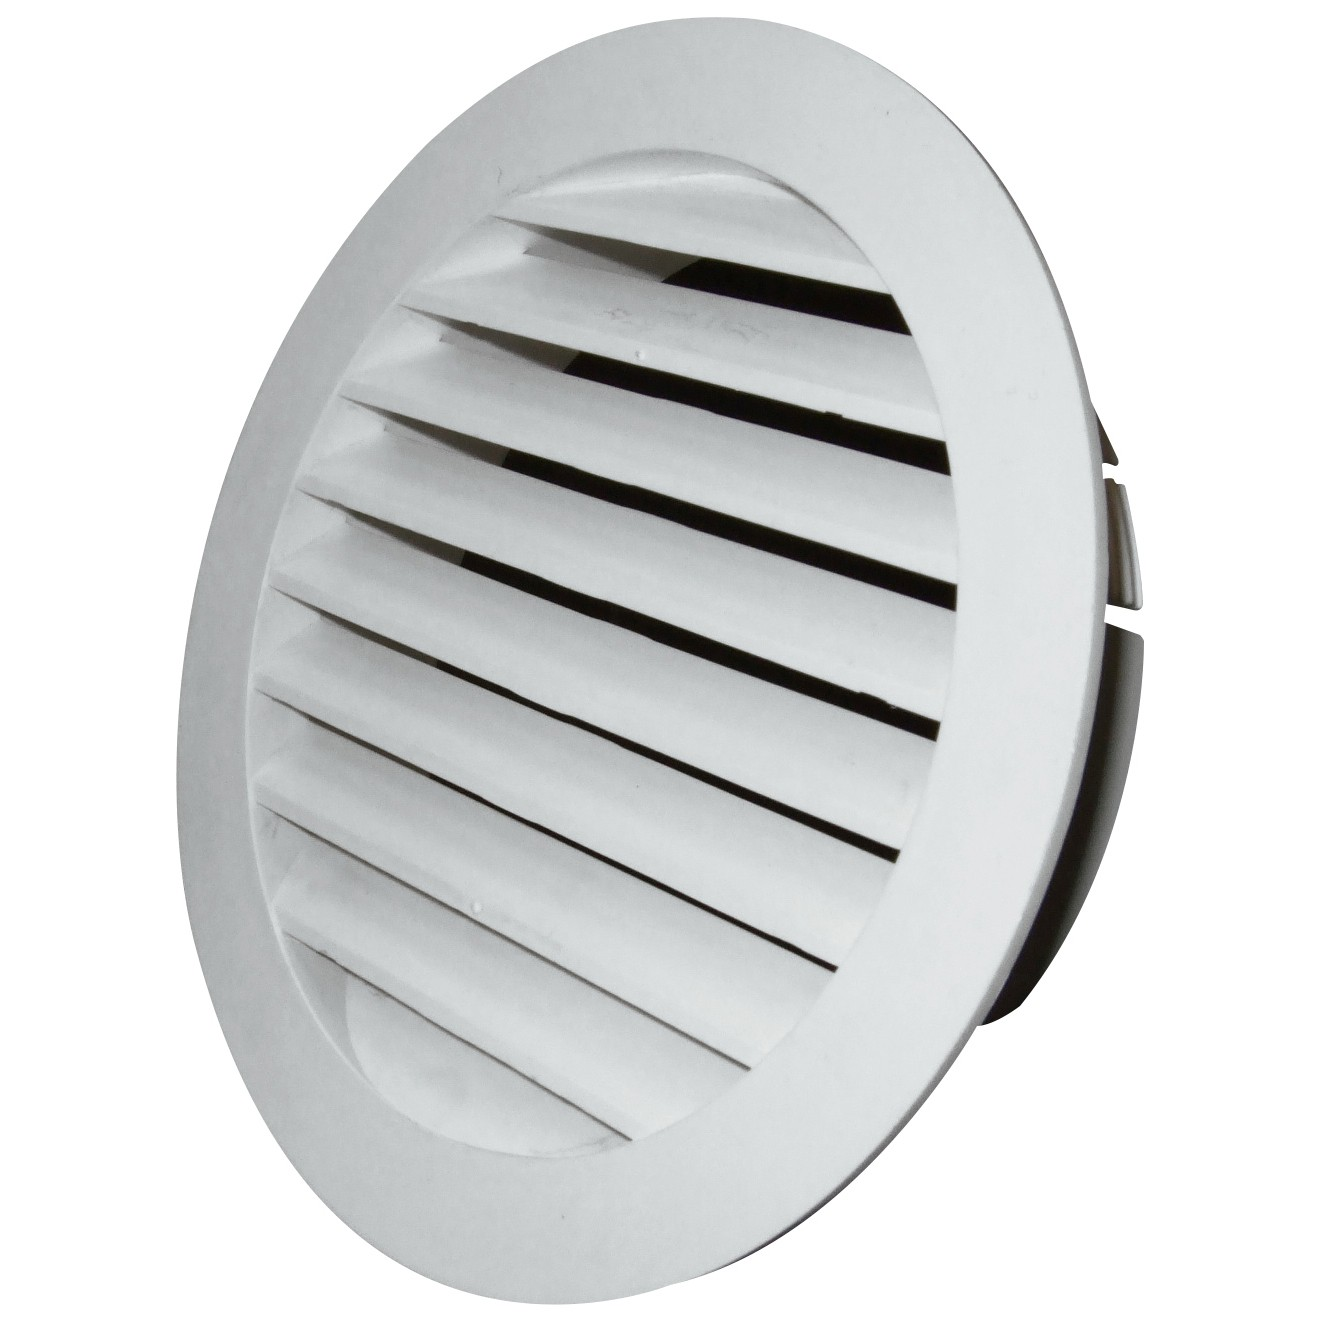 Manrose External Round Louvred Grille Outlet - White, 100mm